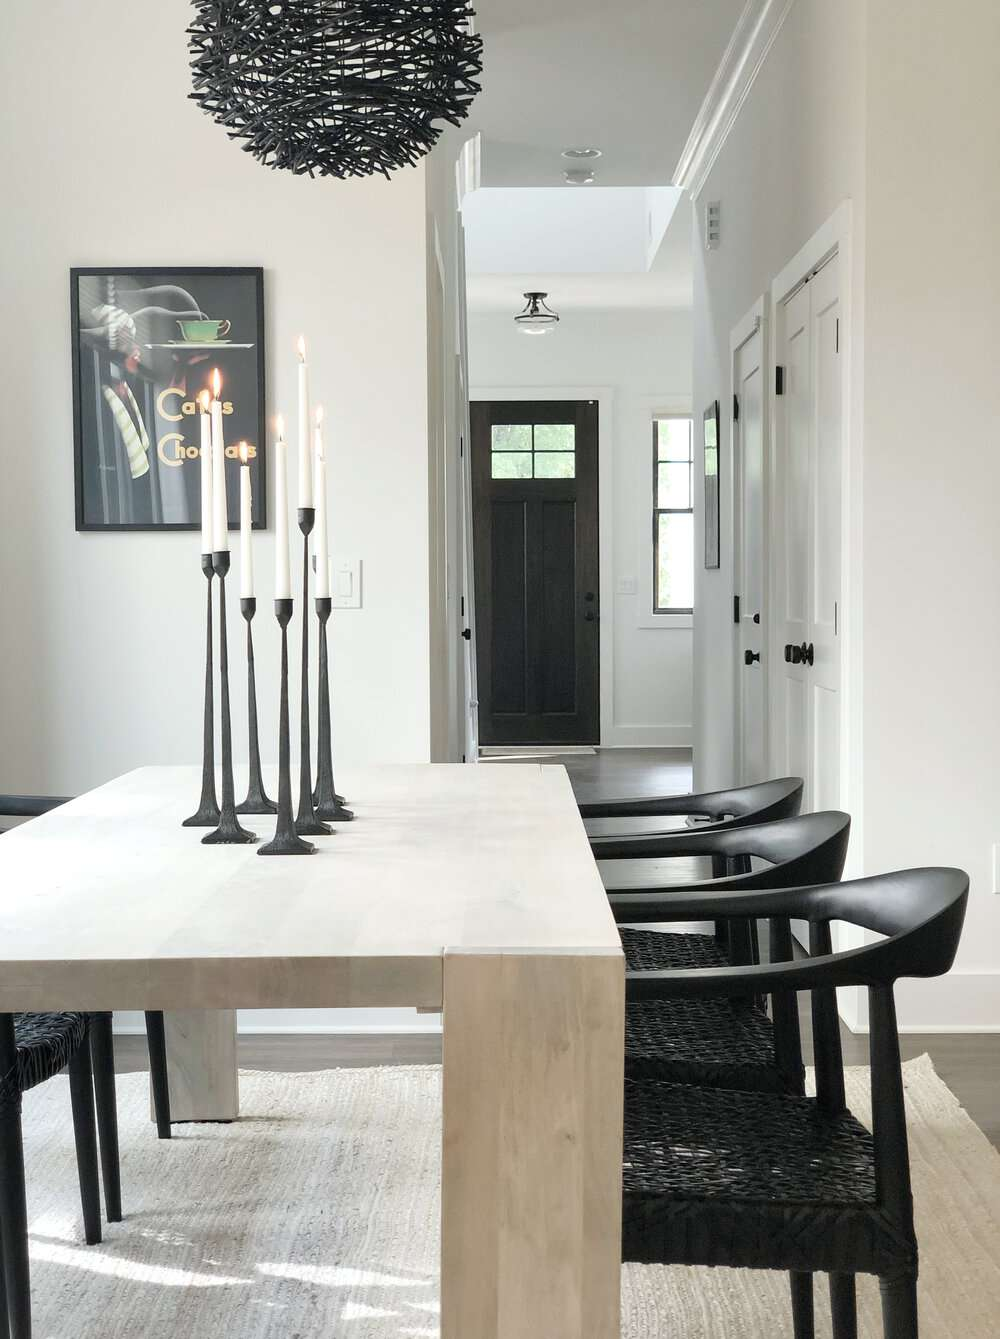 Modern dining room with a black front door in the background